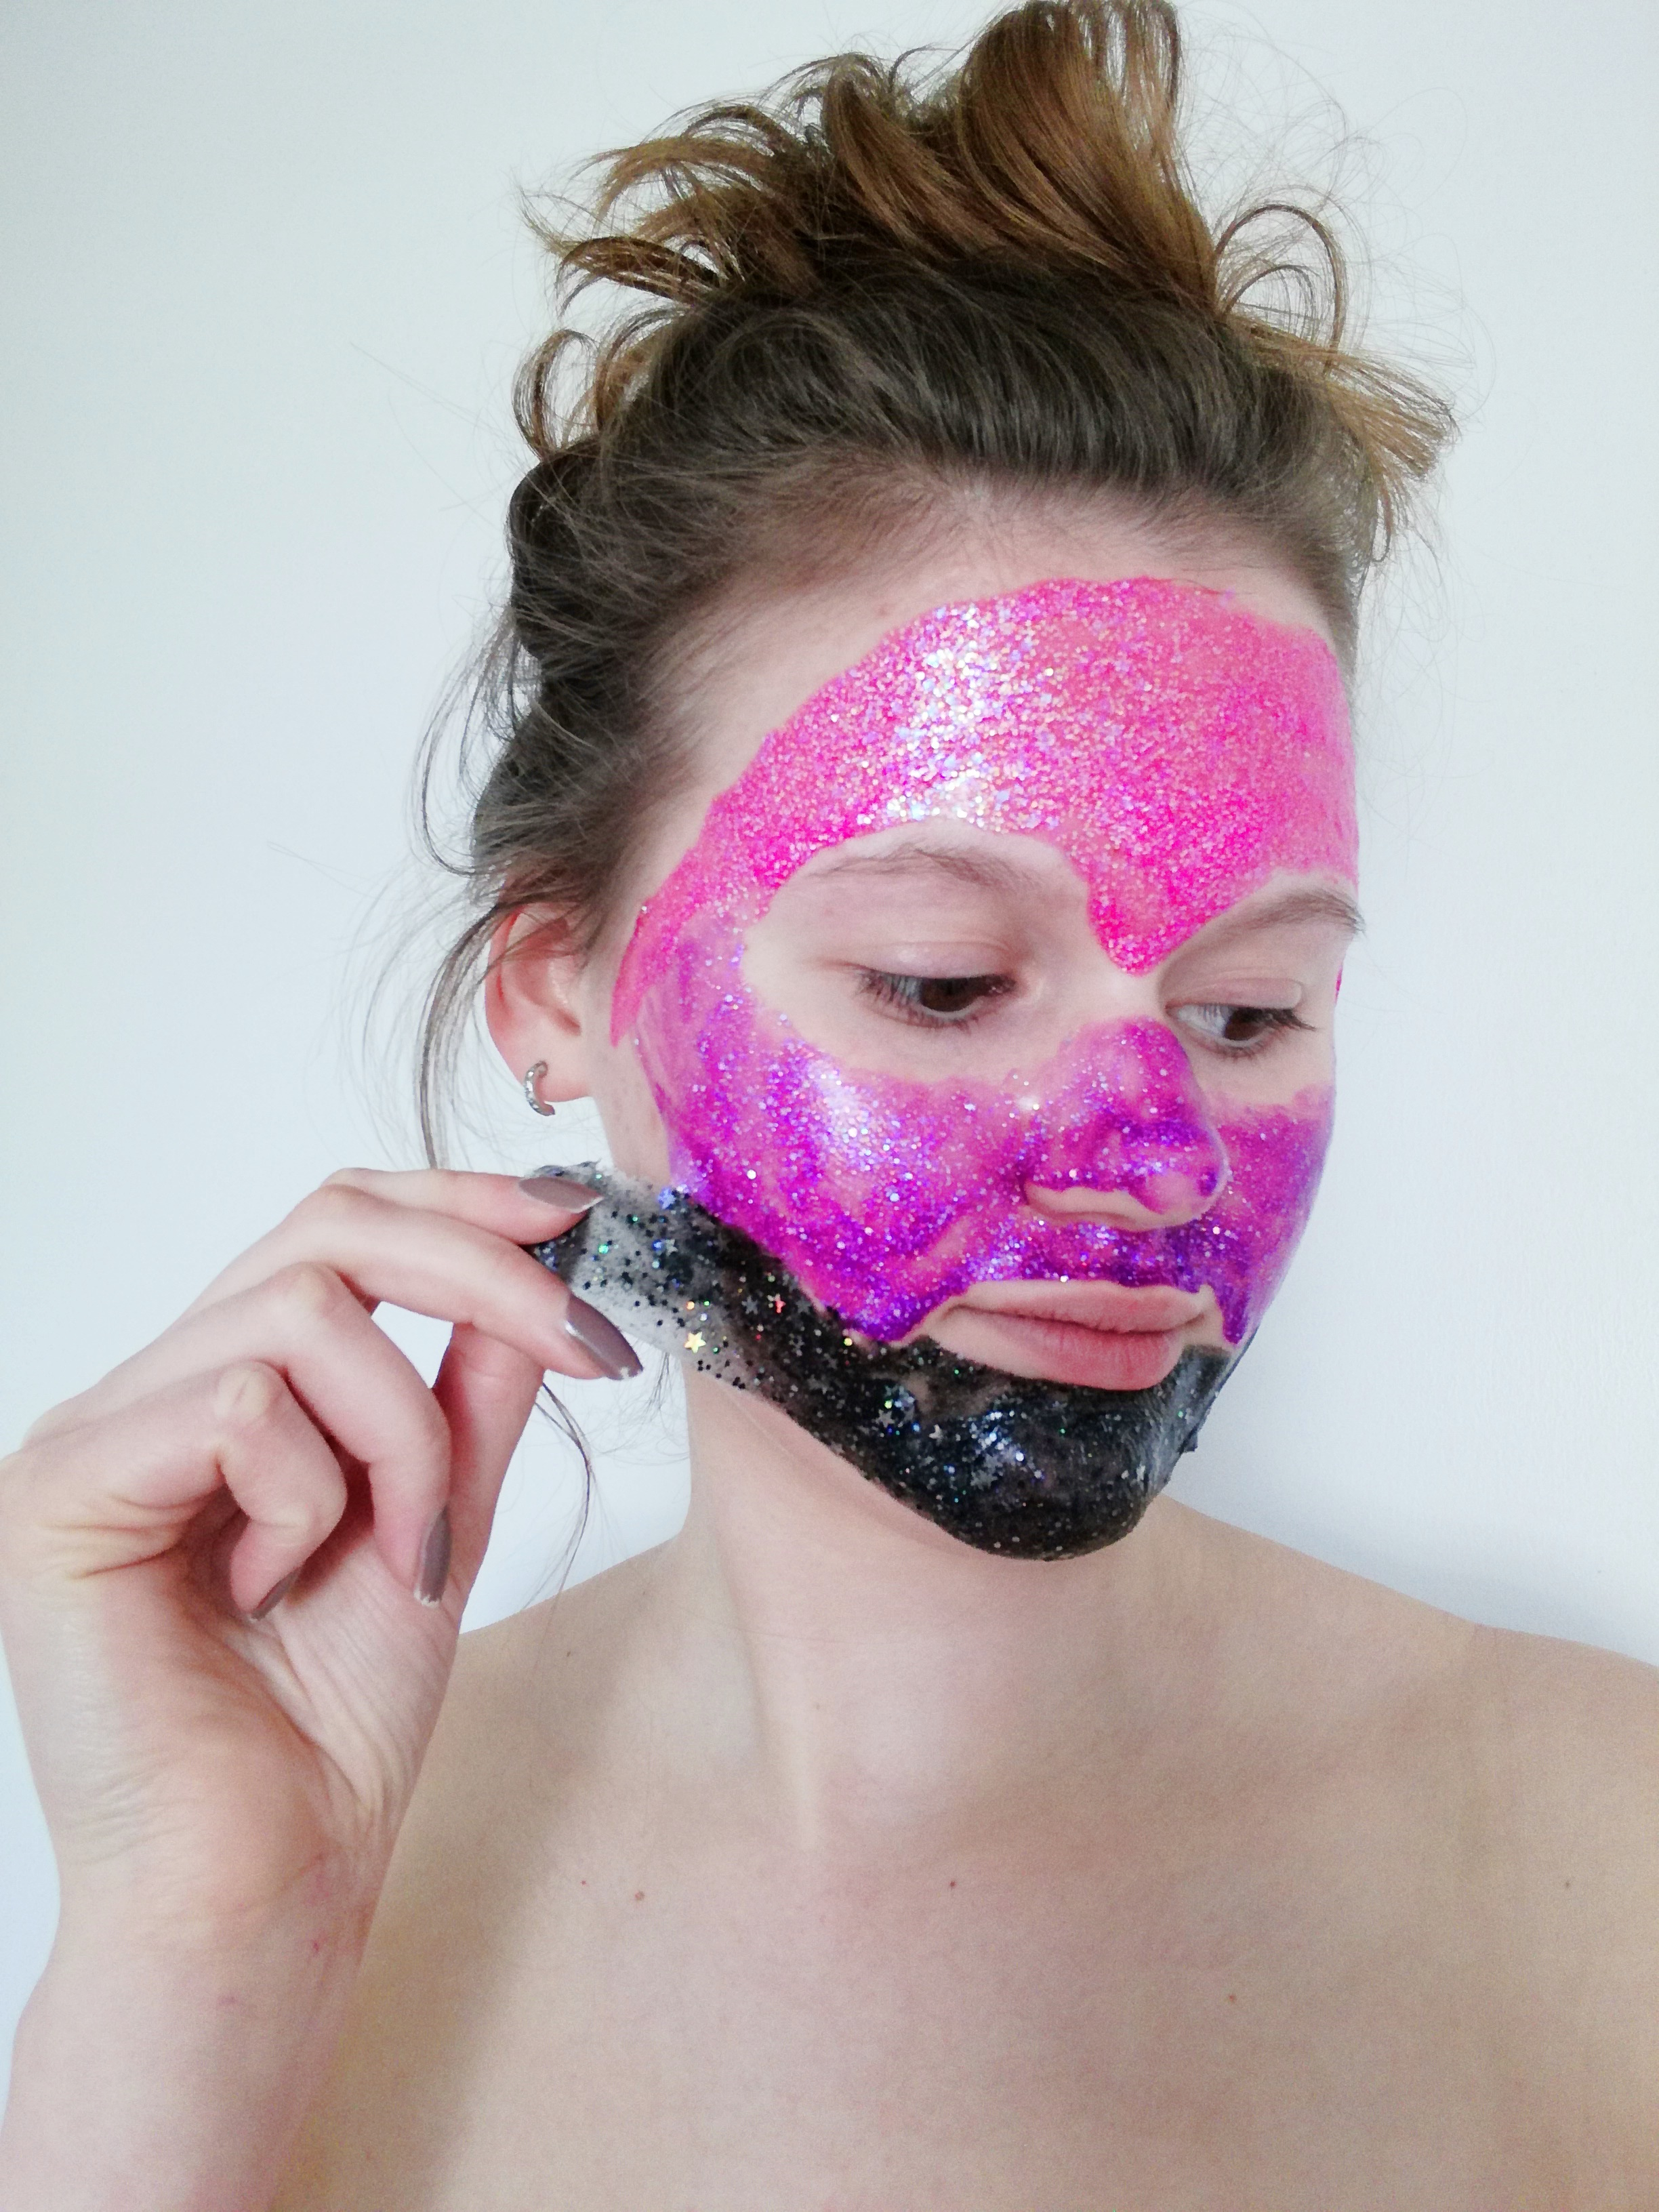 GLAMGLOW x MY LITTLE PONY Gravitymud glittermask peel-off